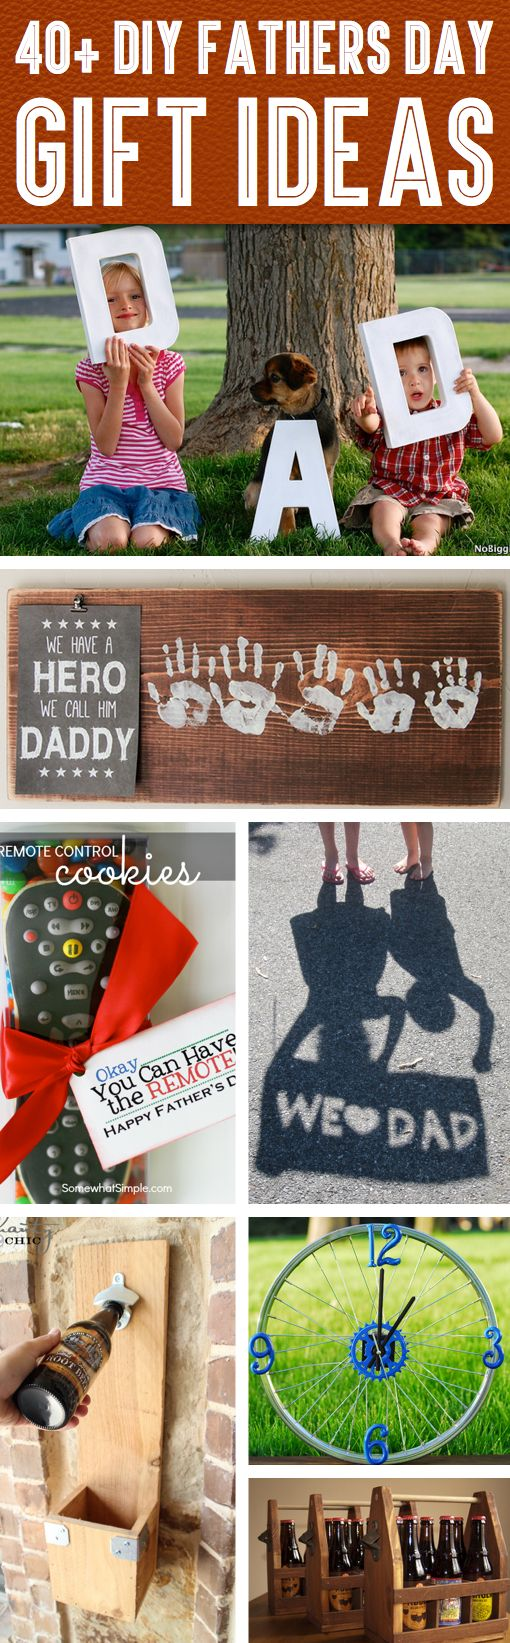 Make Your Daddy Feel Truly Special With These 40+ Exquisite Fathers Day Gift Ideas!